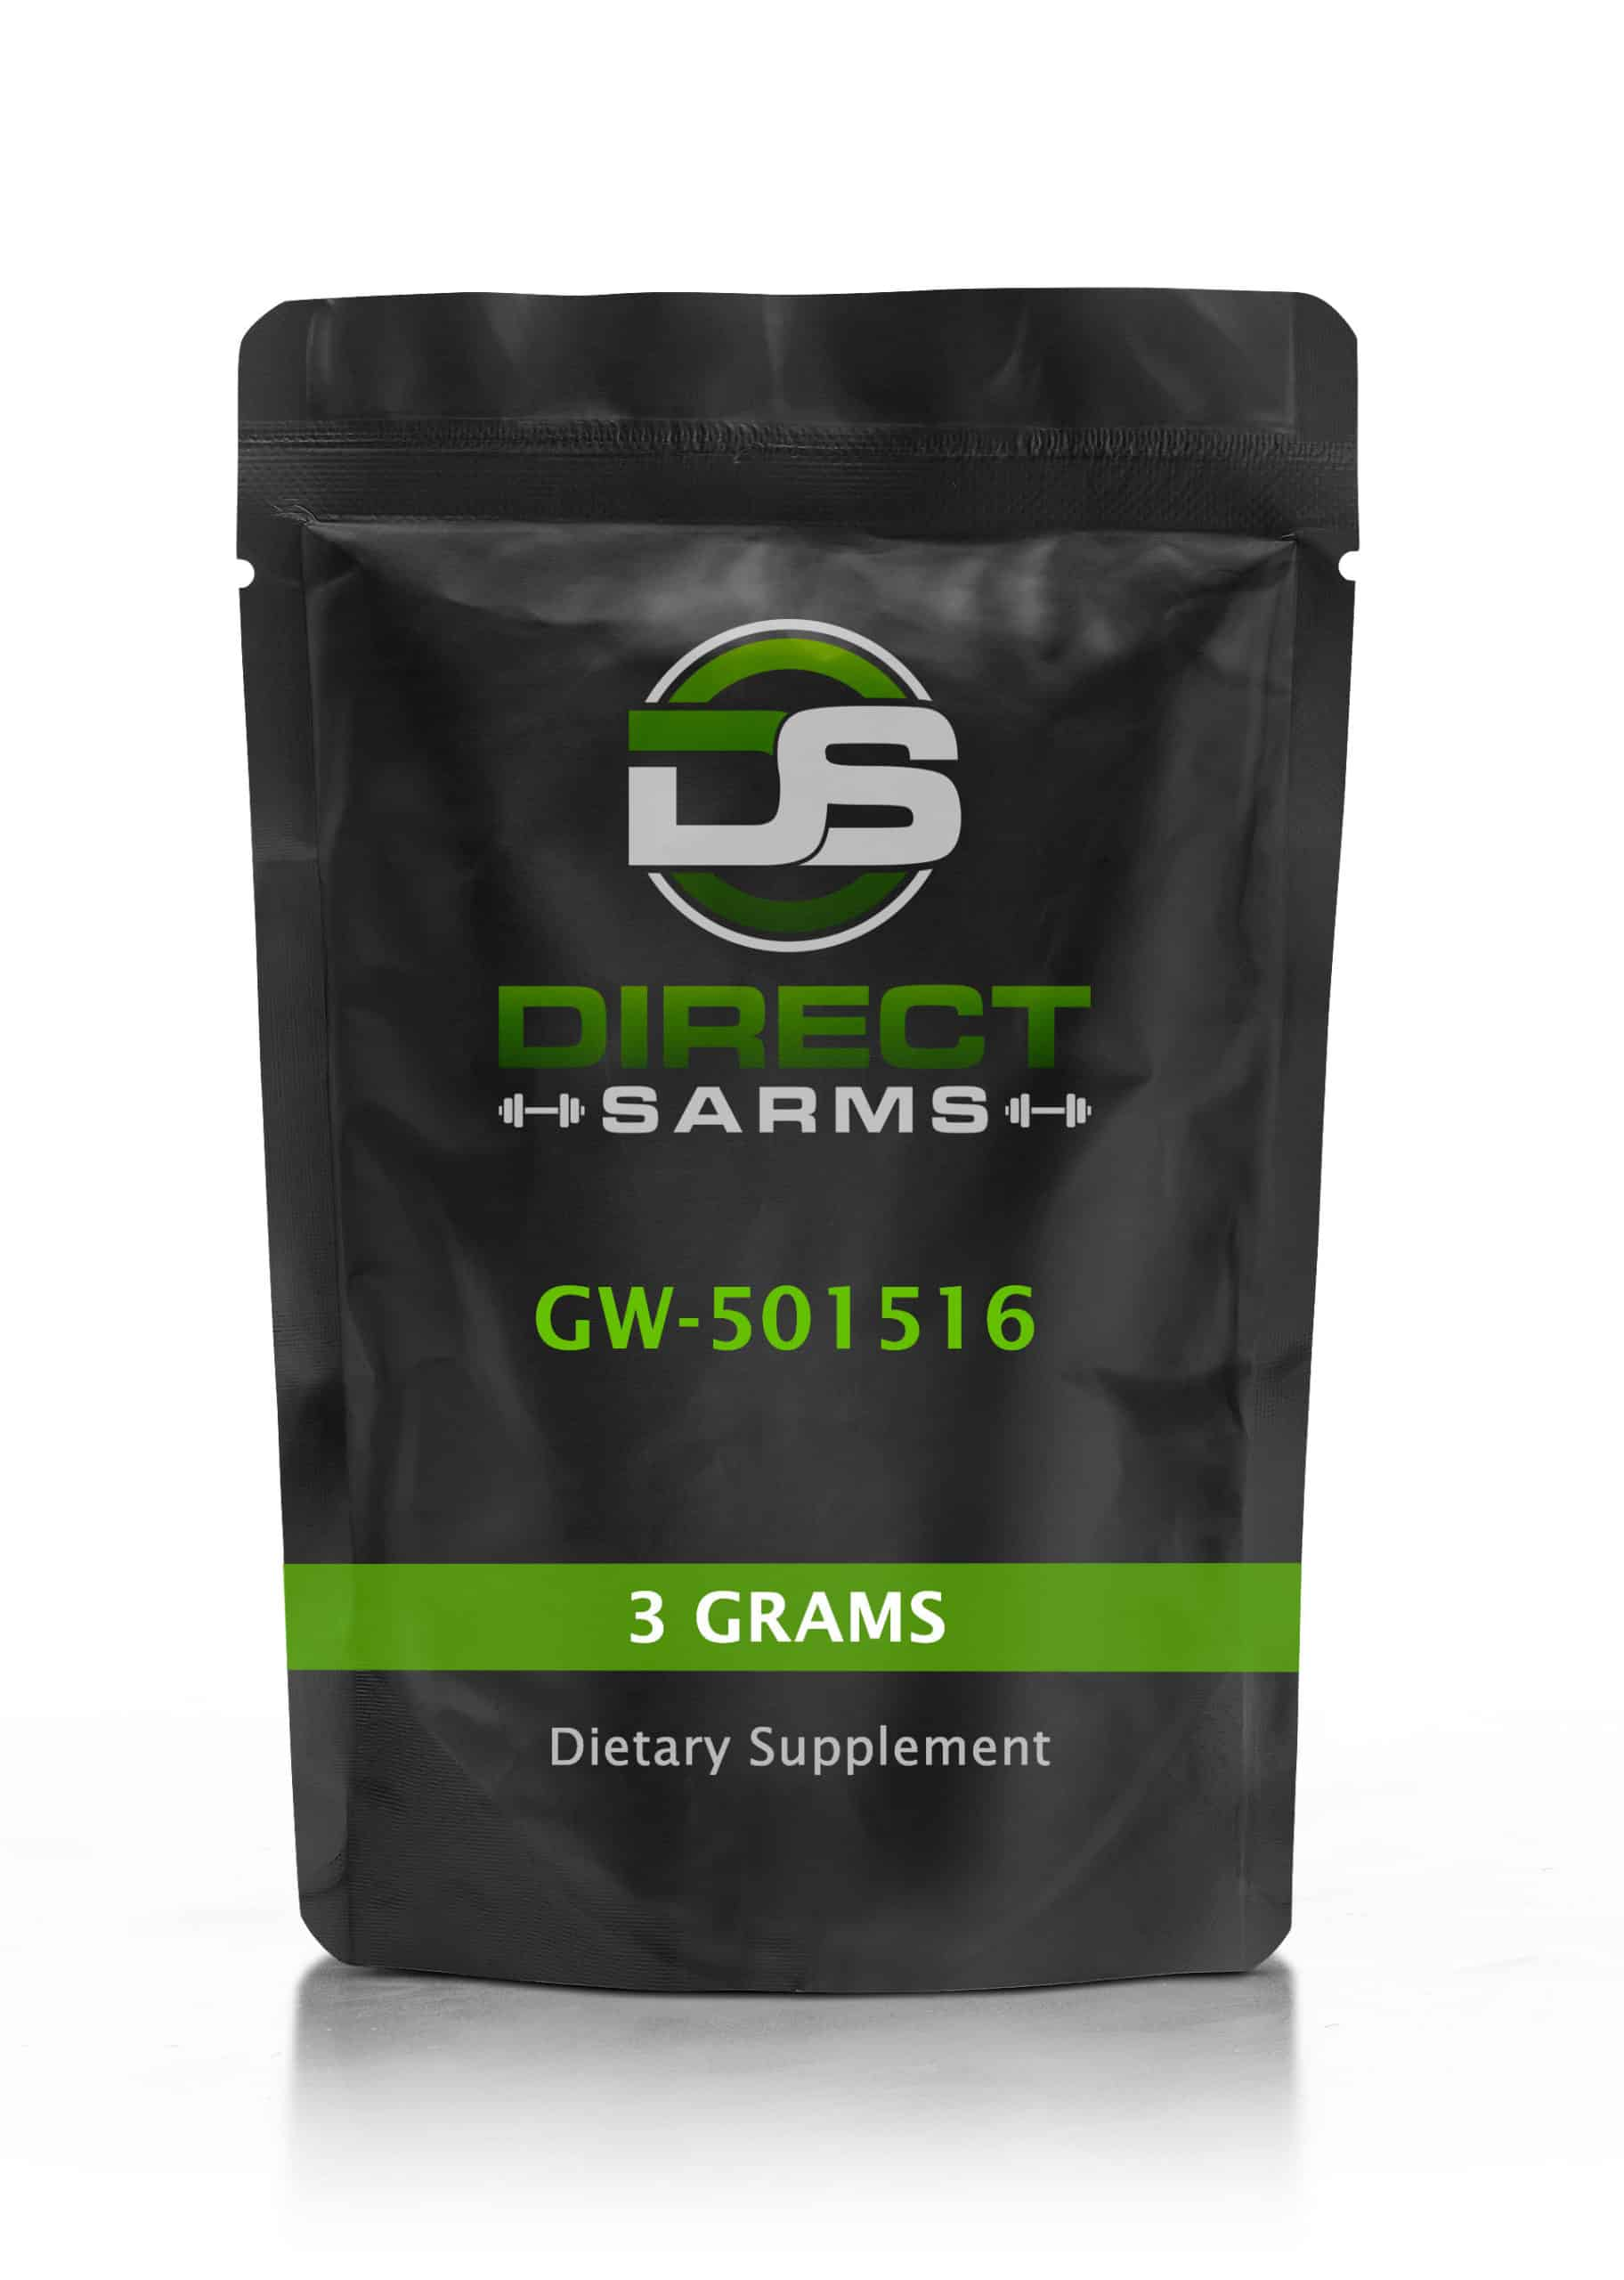 BUY GW-501516 ONLINE Direct Sarms Hungary